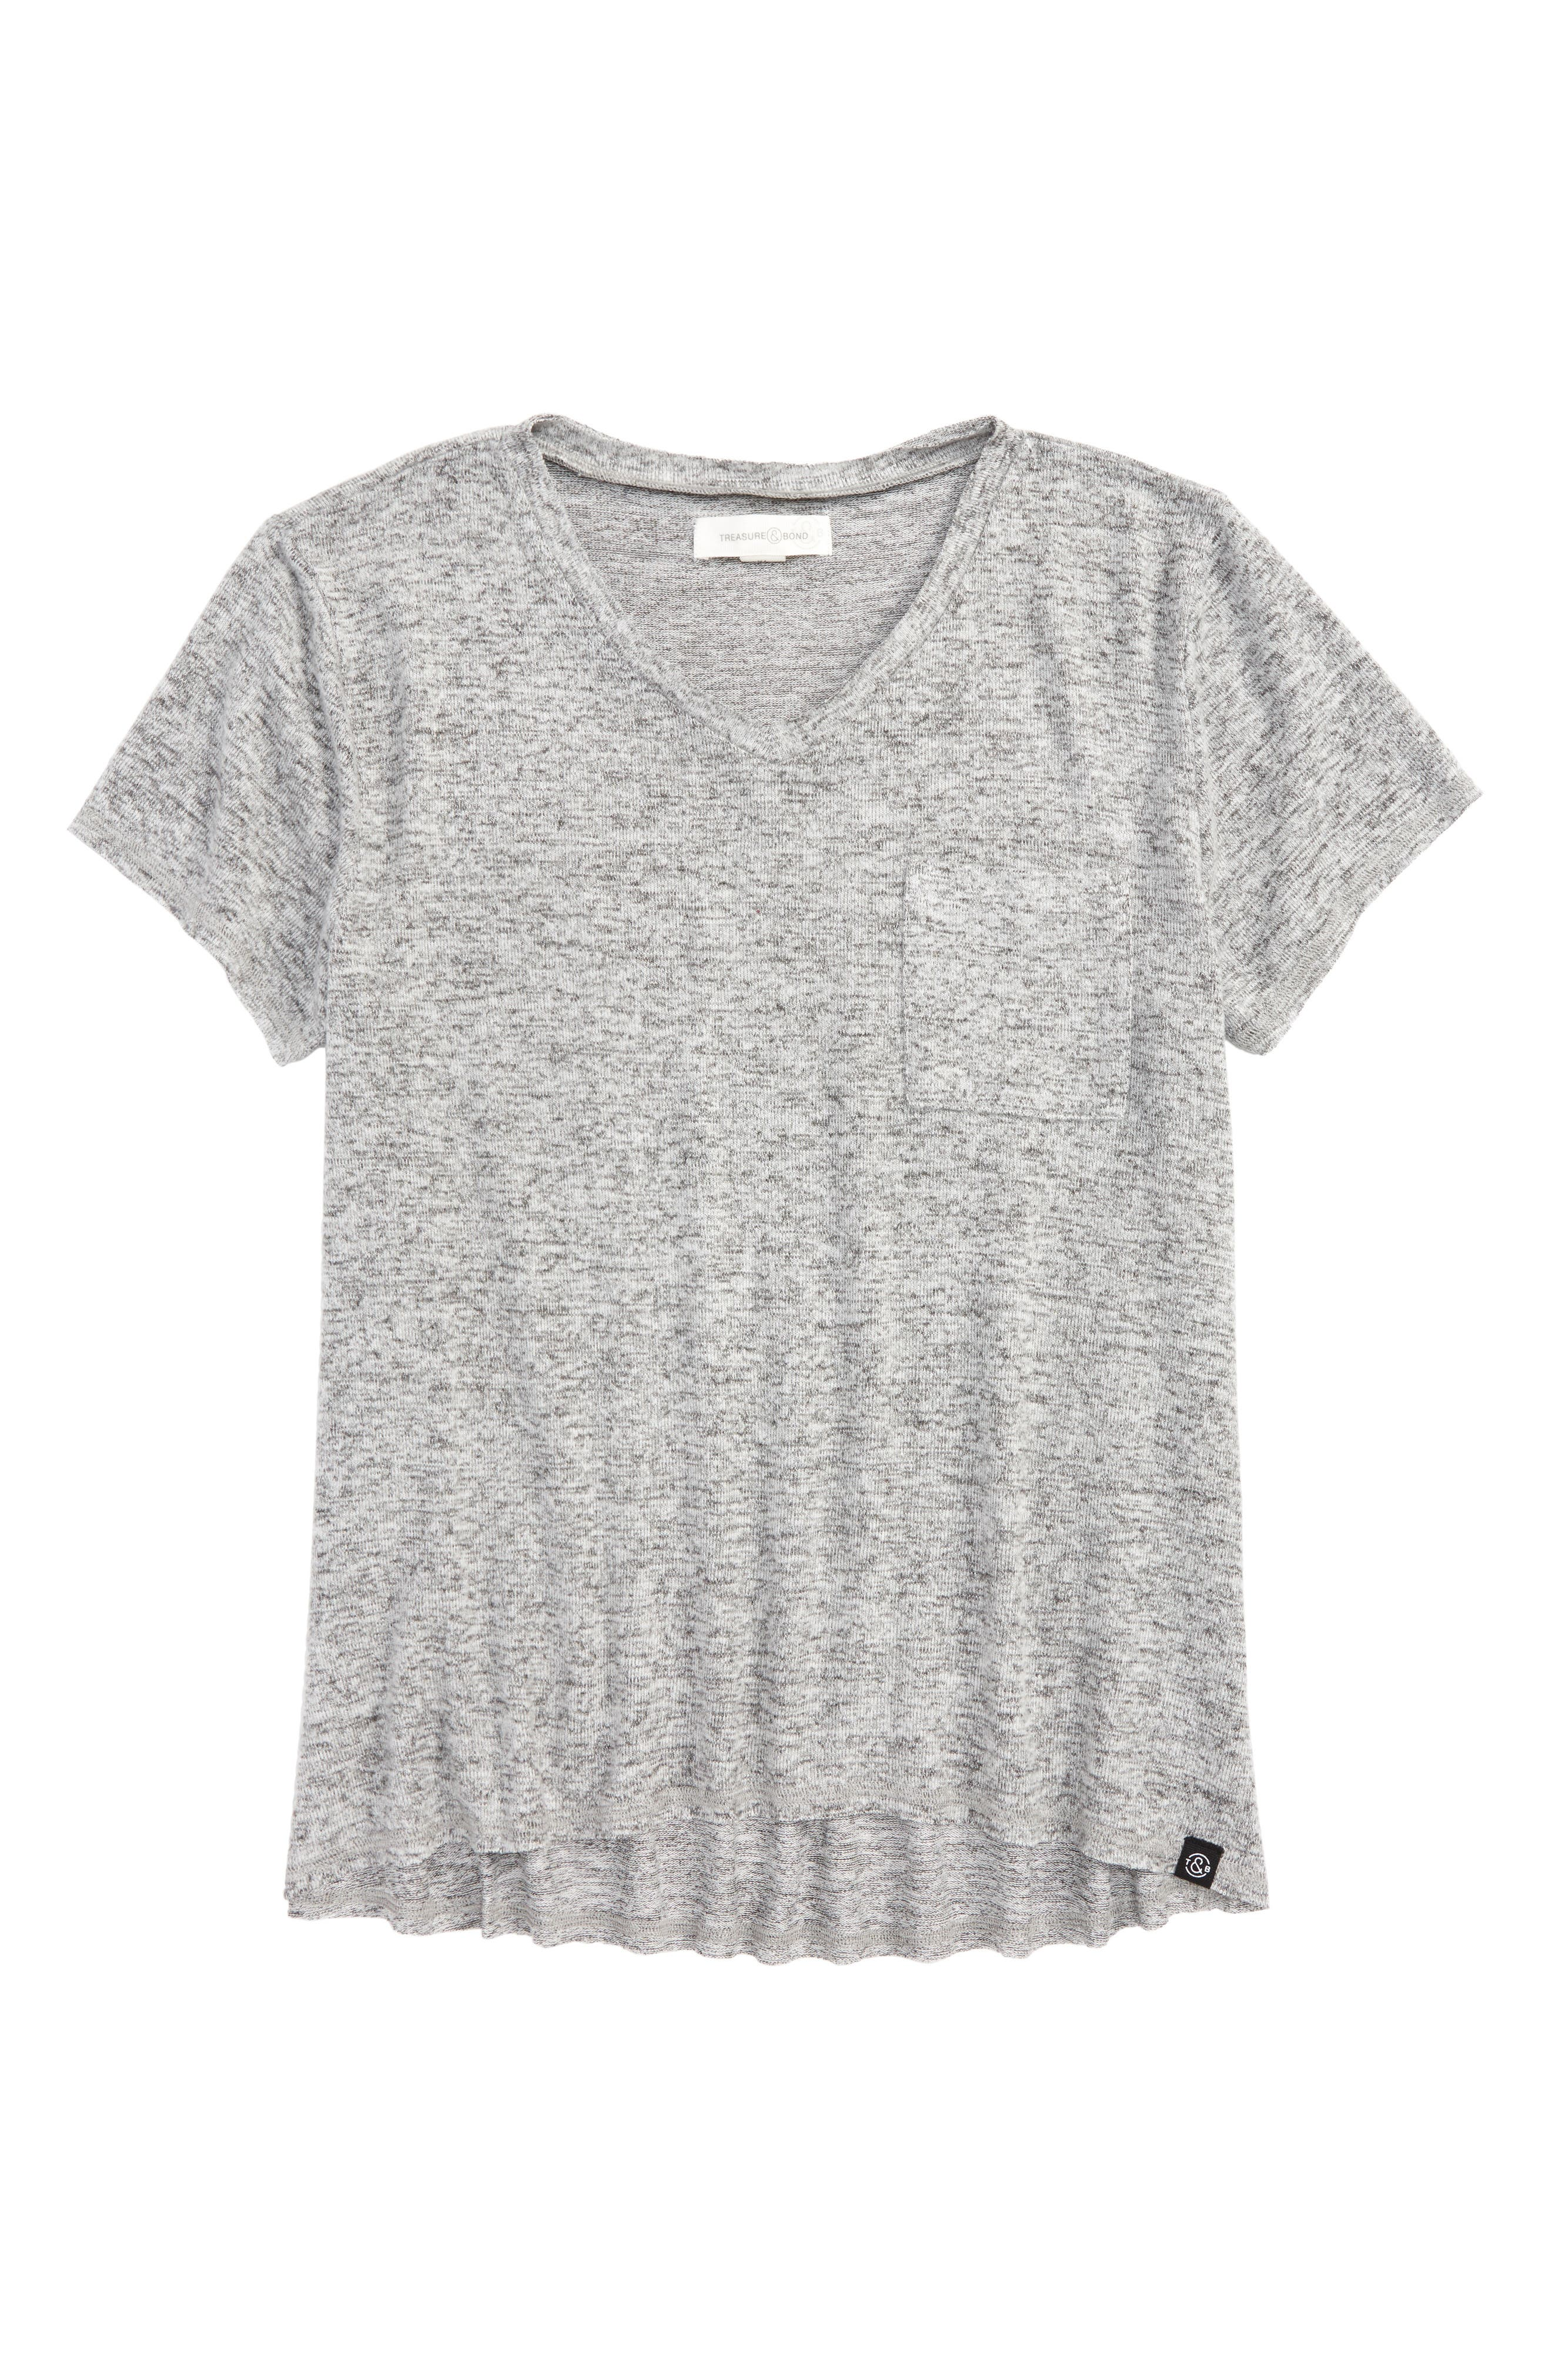 Treasure & Bond Oversized Pocket Tee (Big Girls)